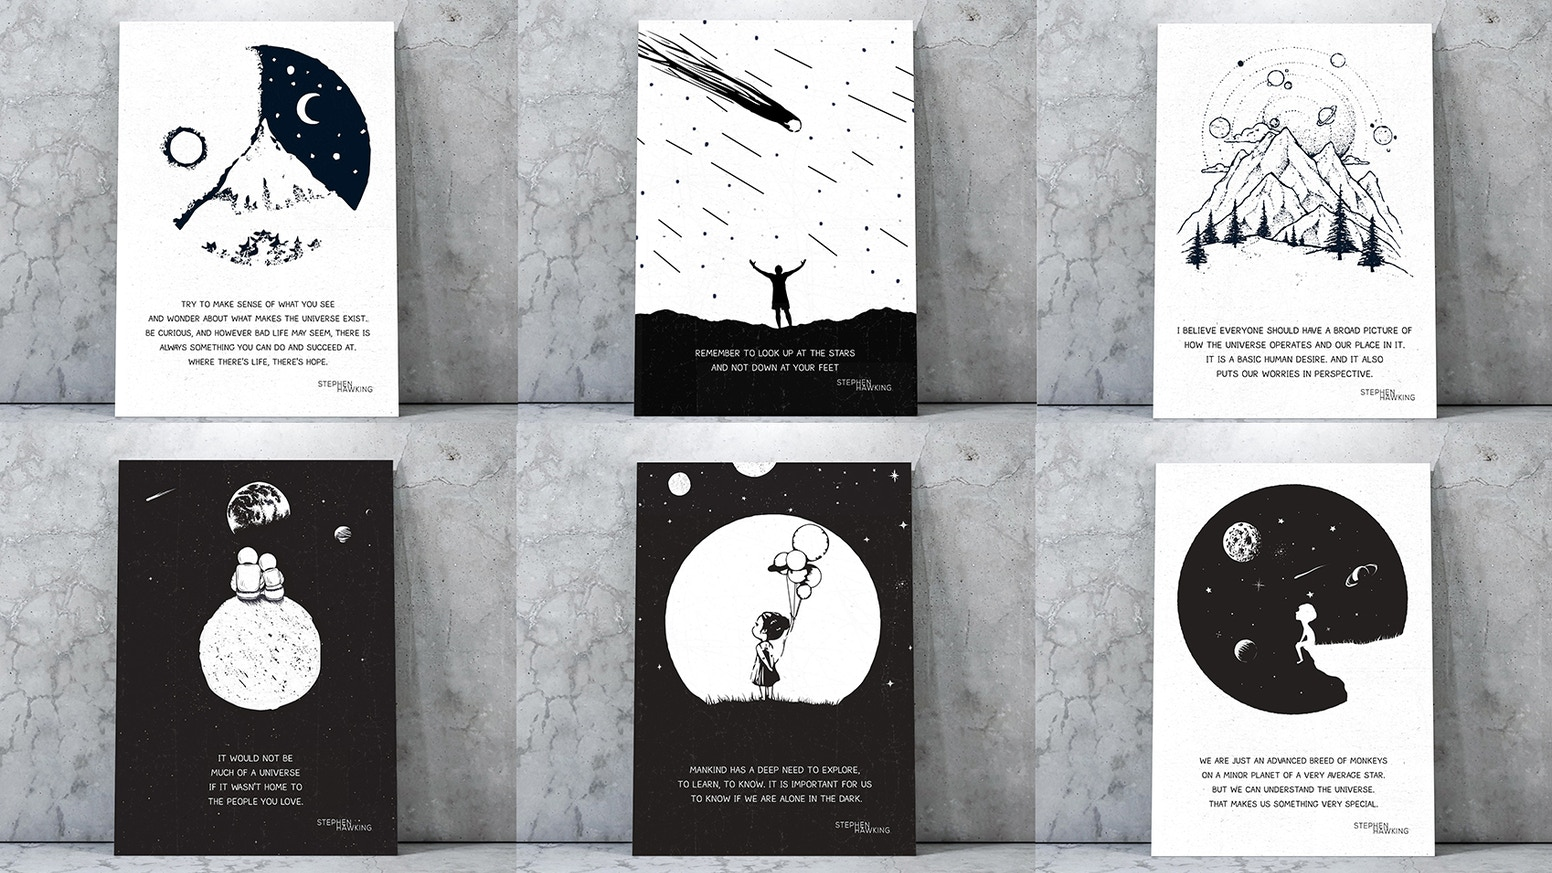 c6671d728 A collection of wall art prints inspired by Stephen Hawking's quotable  wisdom for everyday inspiration.